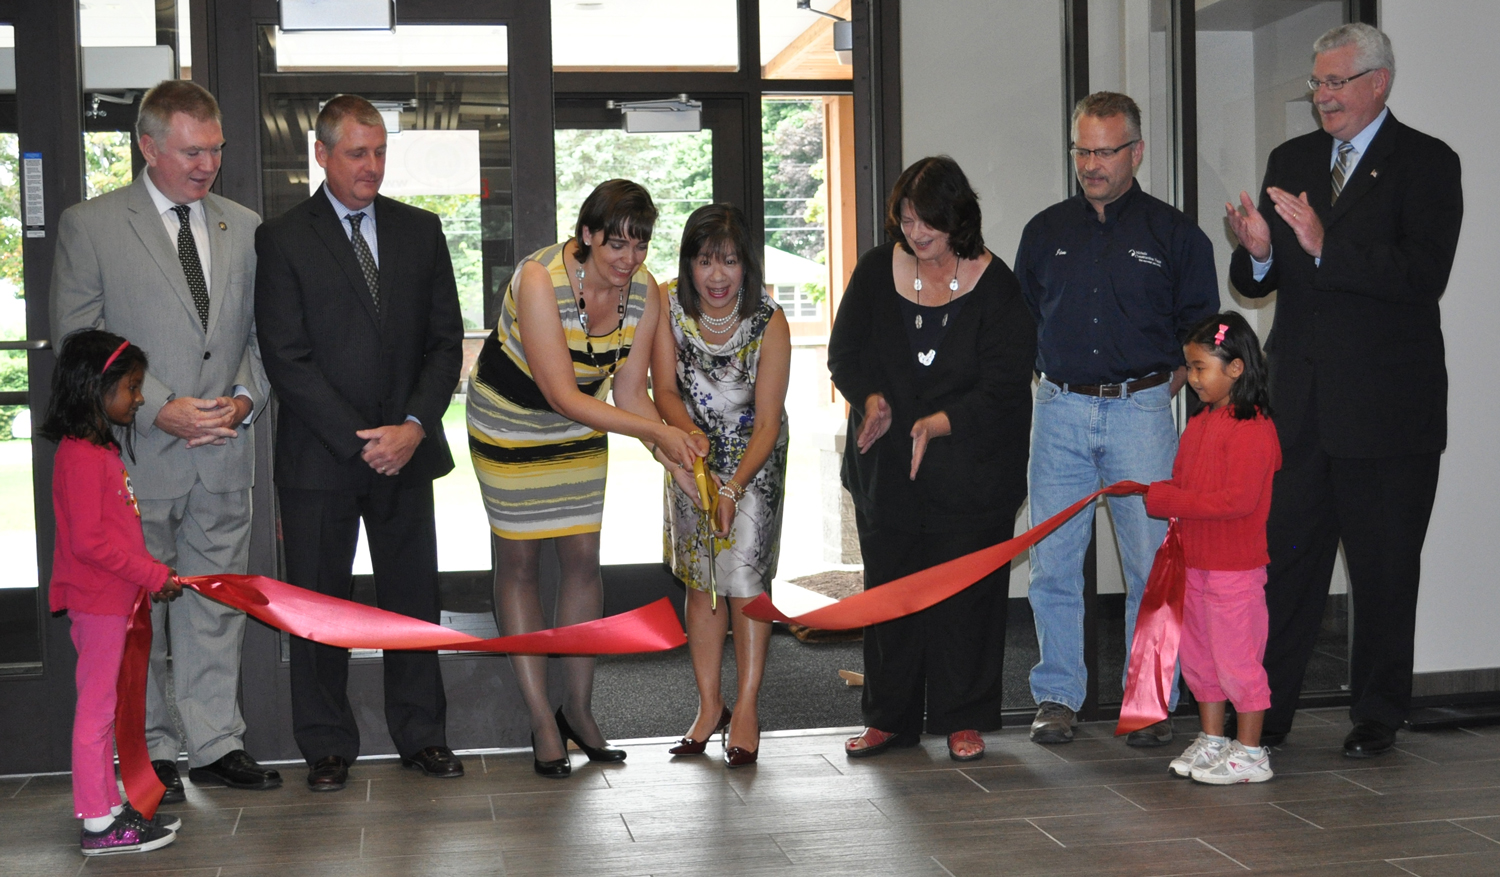 """Participating in the Ribbon Cutting are (left to right):  New York State Assemblyman Mark Johns; Keith Gobel, Canadaigua National Bank; Jacqueline Griebel, WMS Head of School; Garland Nichols, WMS Board of Trustees Chair; Ann Carmody, Webster Chamber of Commerce, Jim Burms, The Nichols Team; and Tony LaFountain, Penfield Town Supervisor. Special thanks to our """"Ribbon Holders,"""" students Celene (left) and Joyce (right)."""